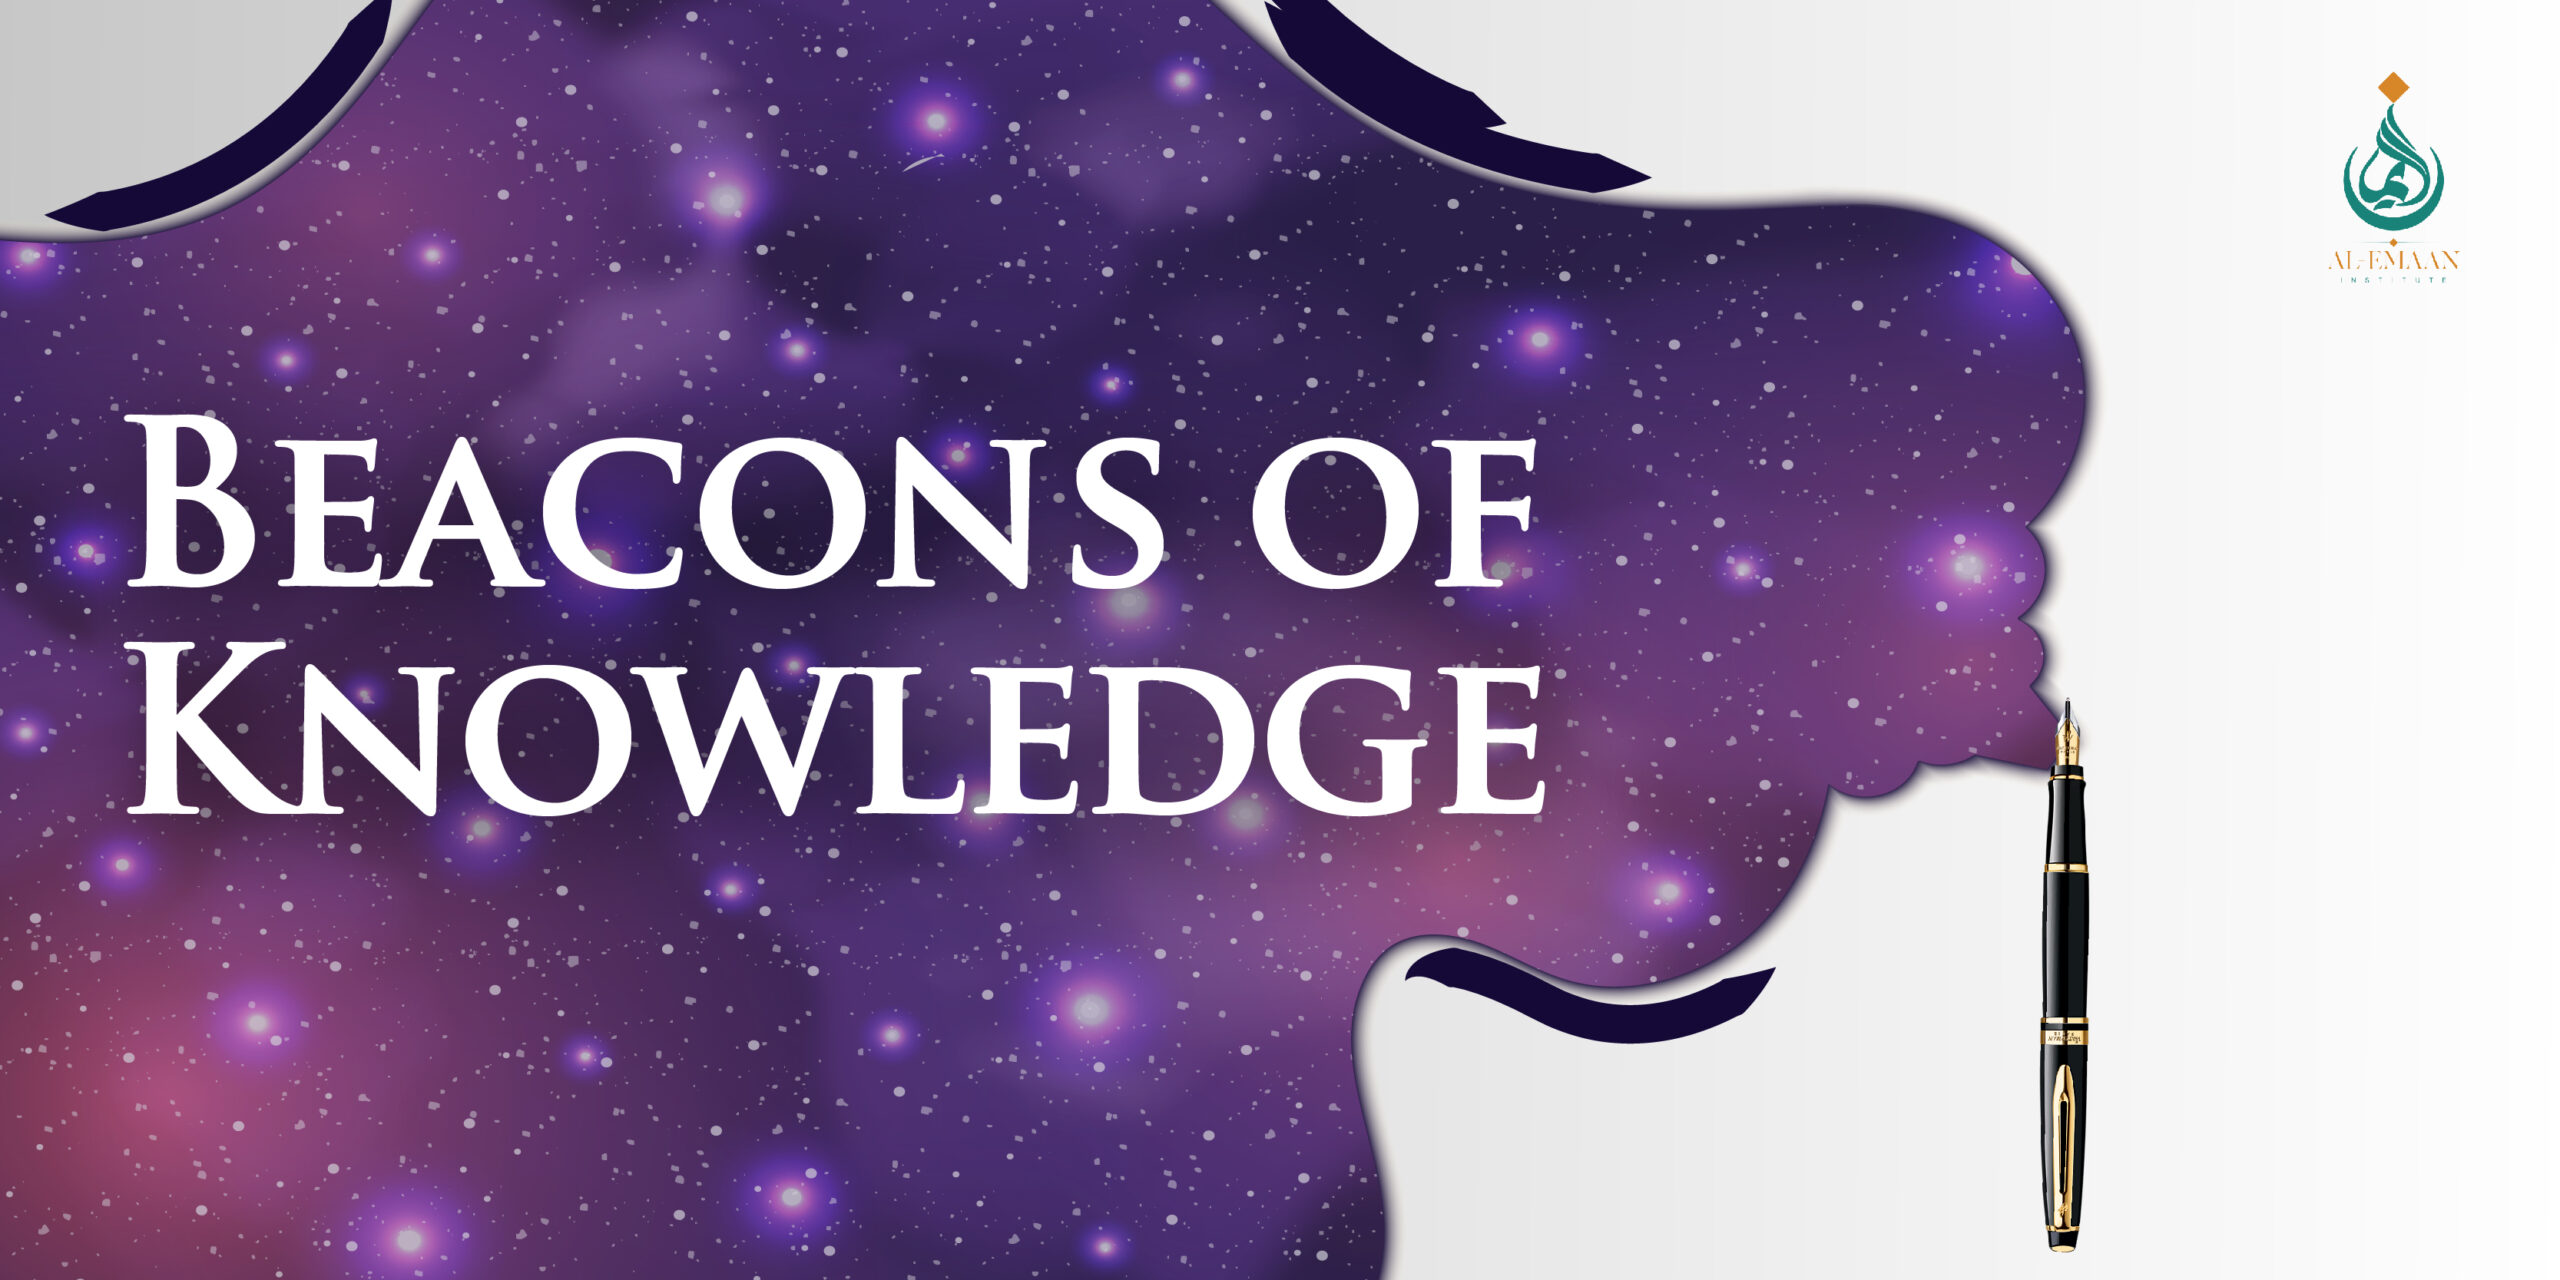 Beacons of Knowledge